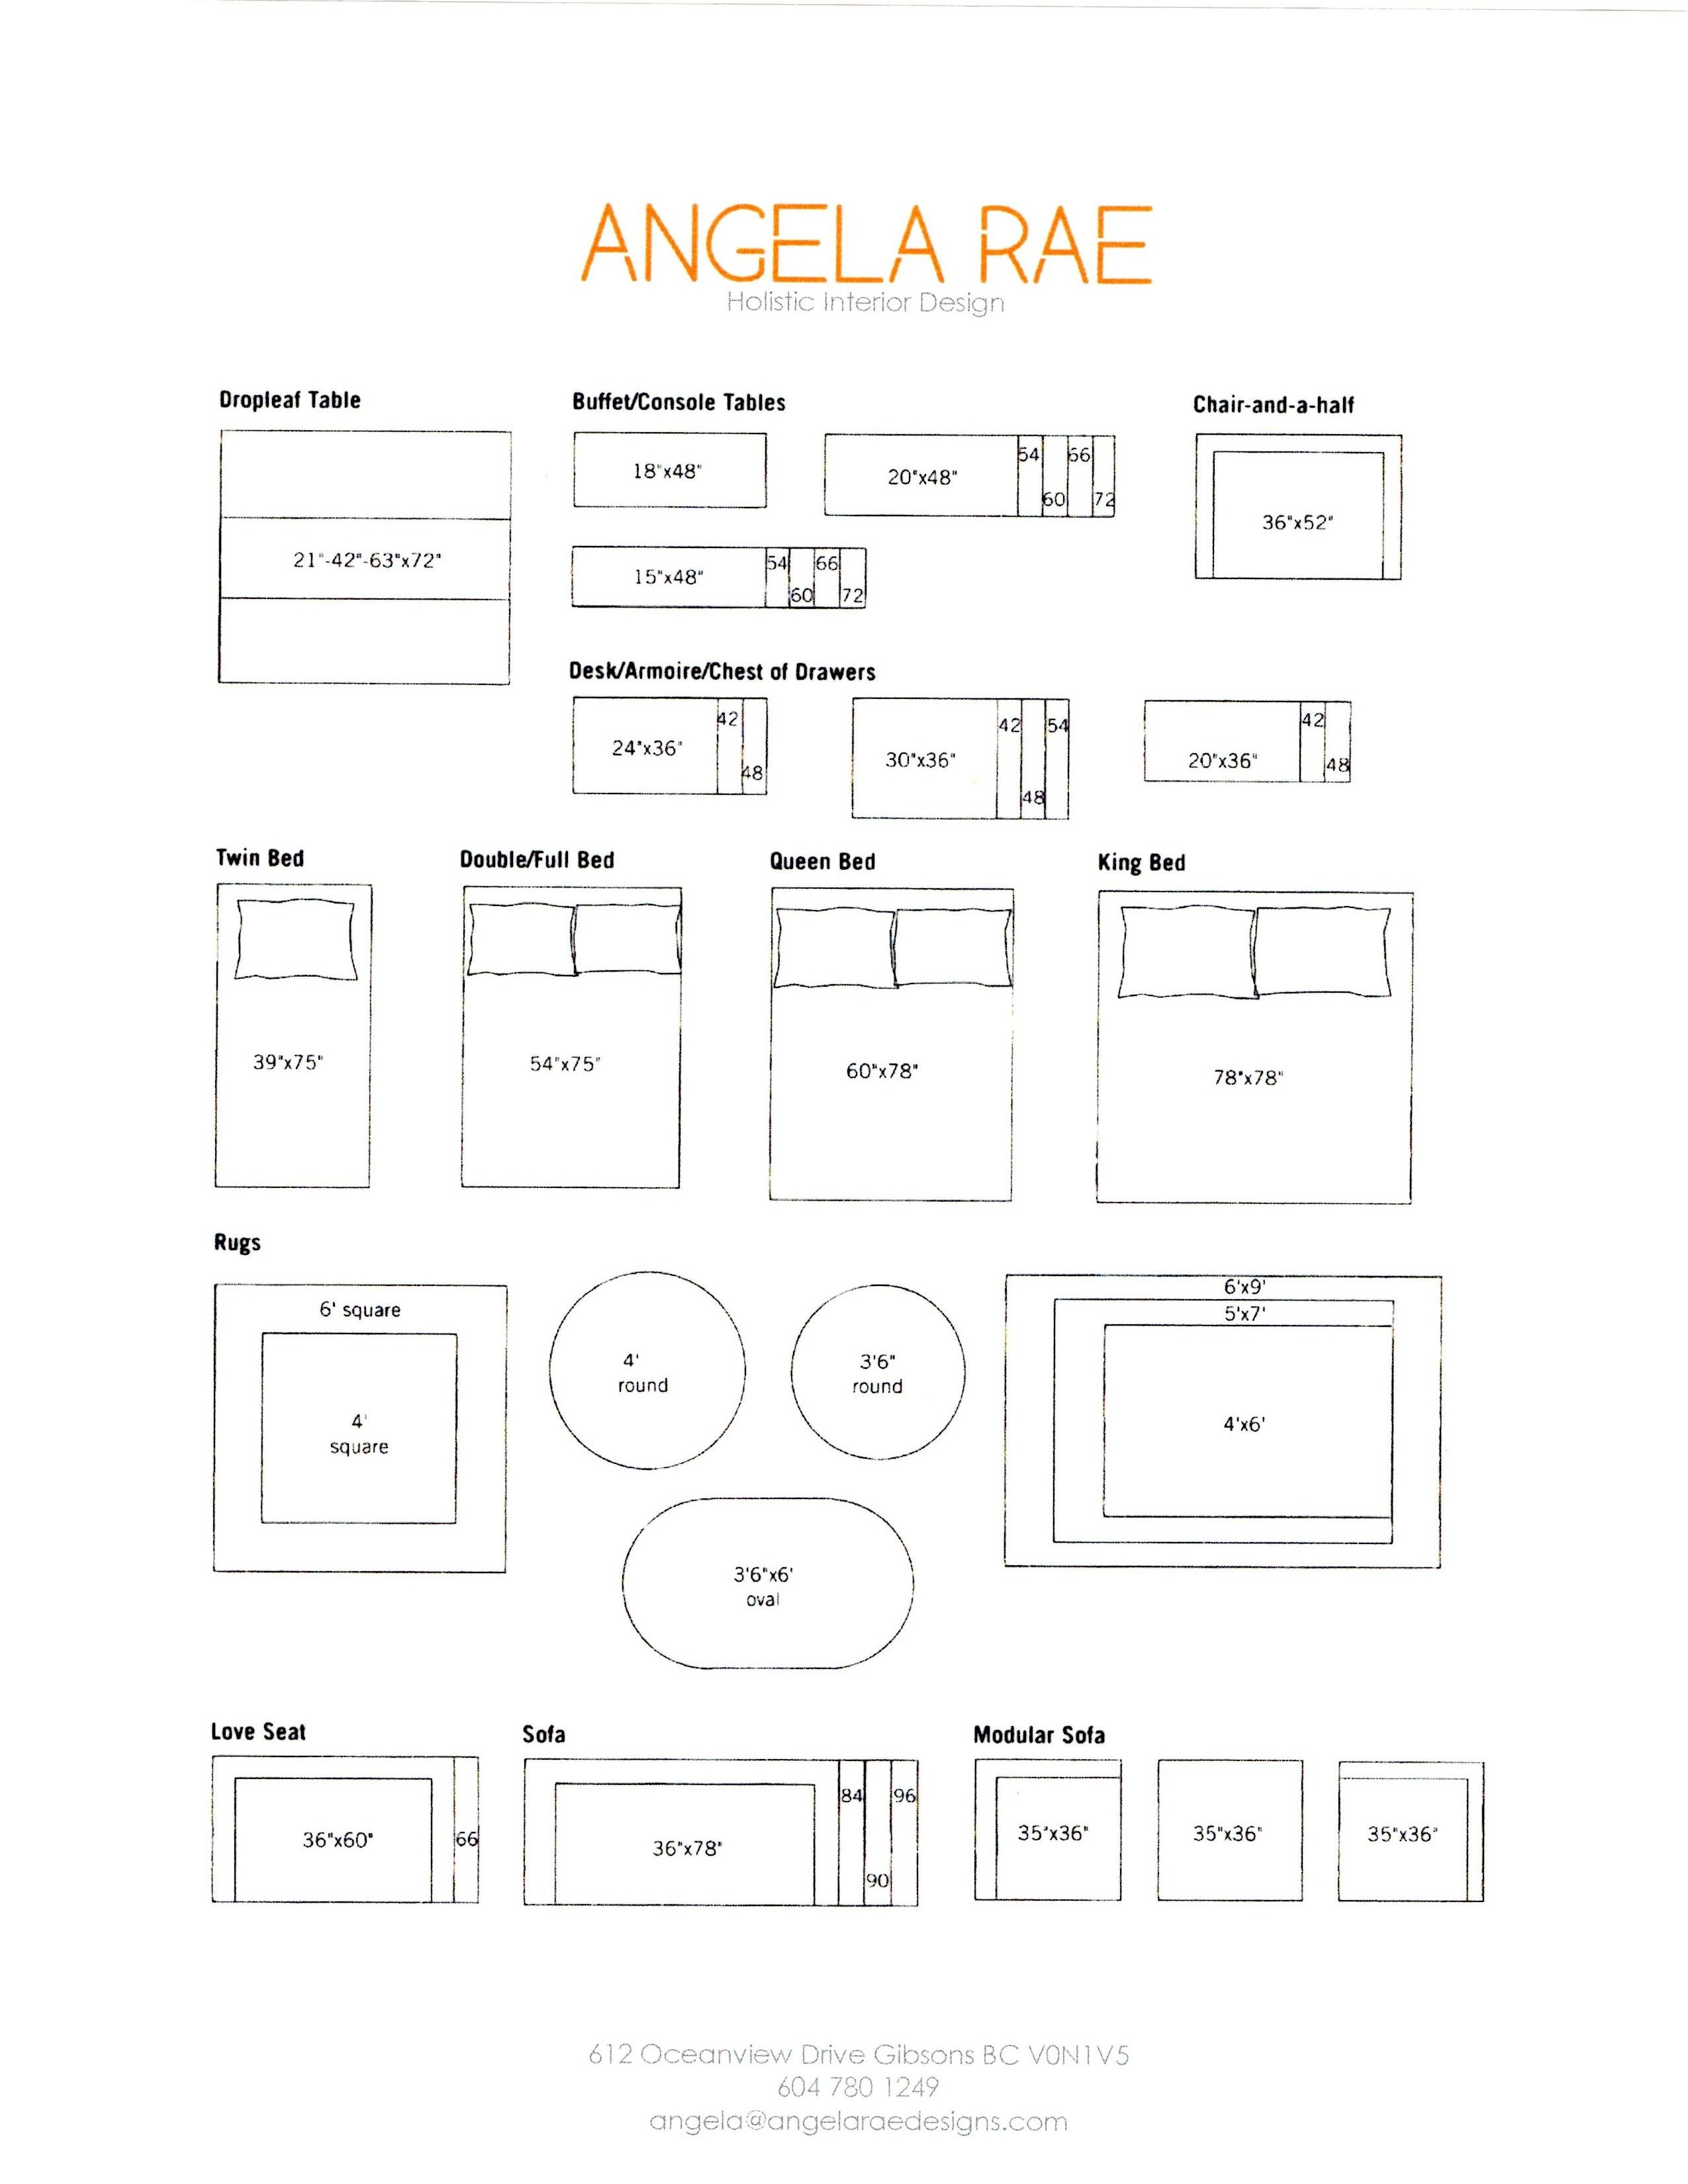 """More Printable Furniture At 1/4"""" Scale. Have Fun! Here's A Tipdon - 1 8 Inch Scale Furniture Templates Printable Free"""